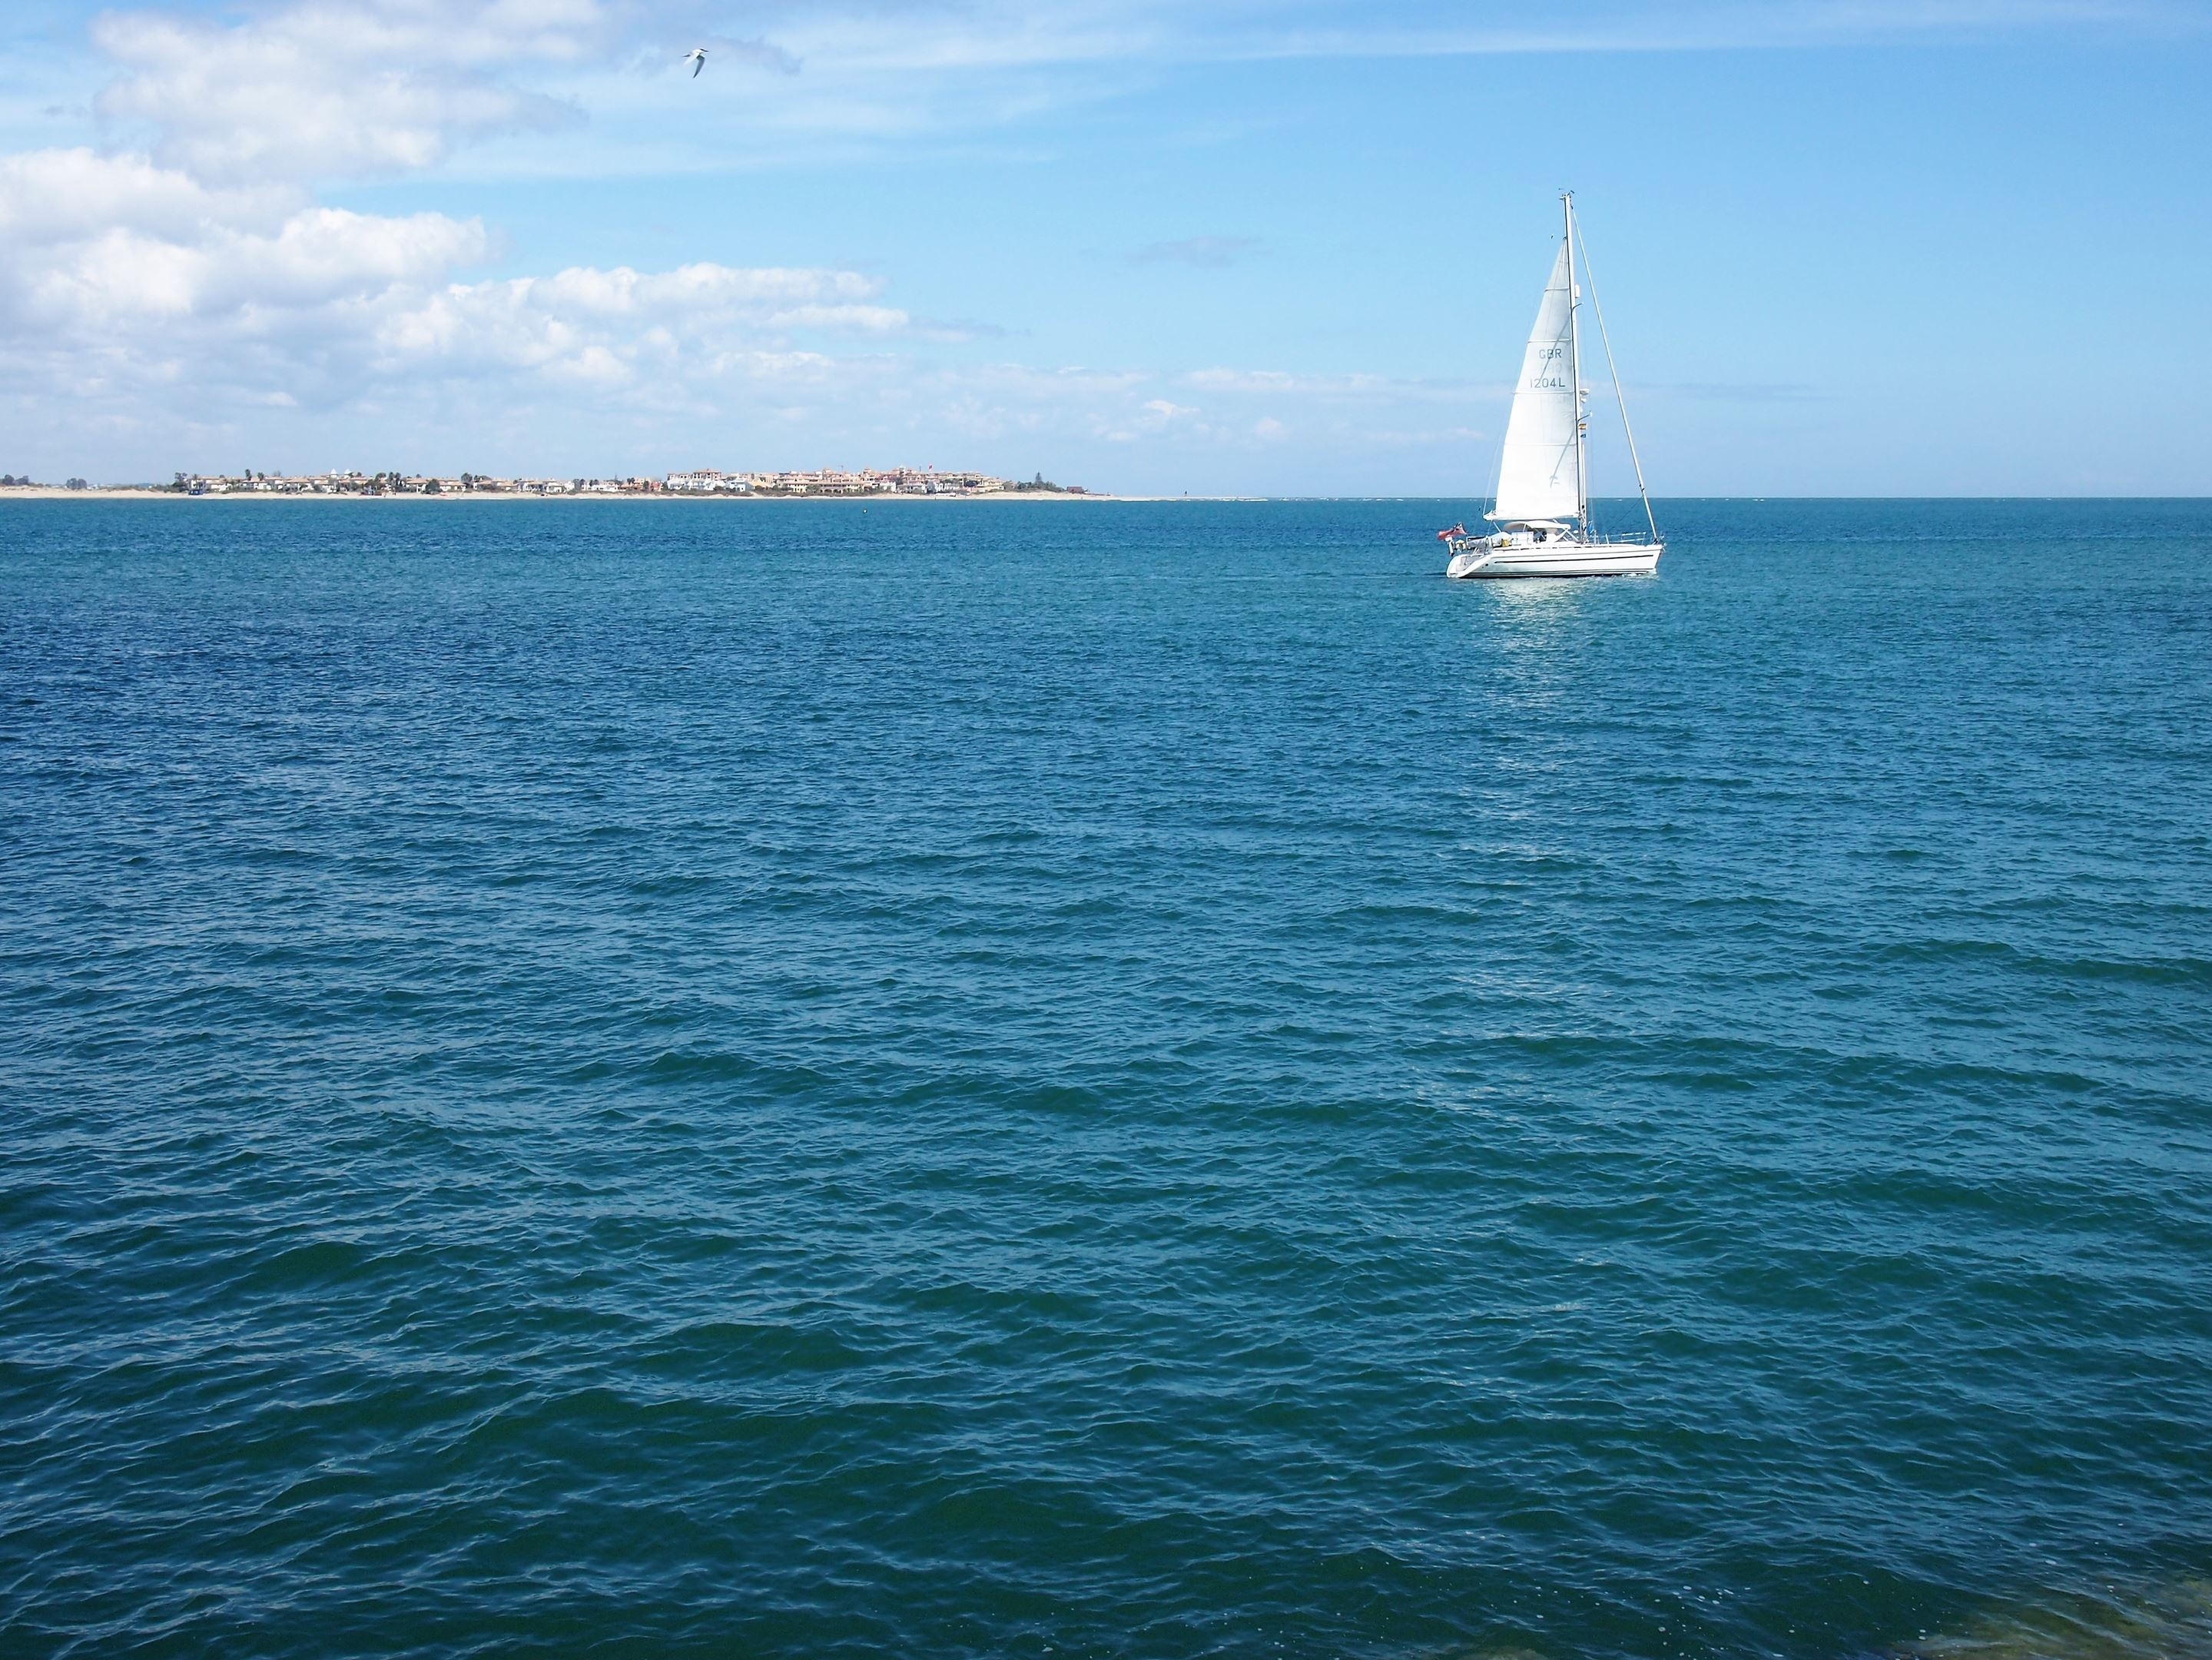 Sailing into the Atlantic Ocean. At the mouth of the Guadiana River, walking to Praia de Santo António.